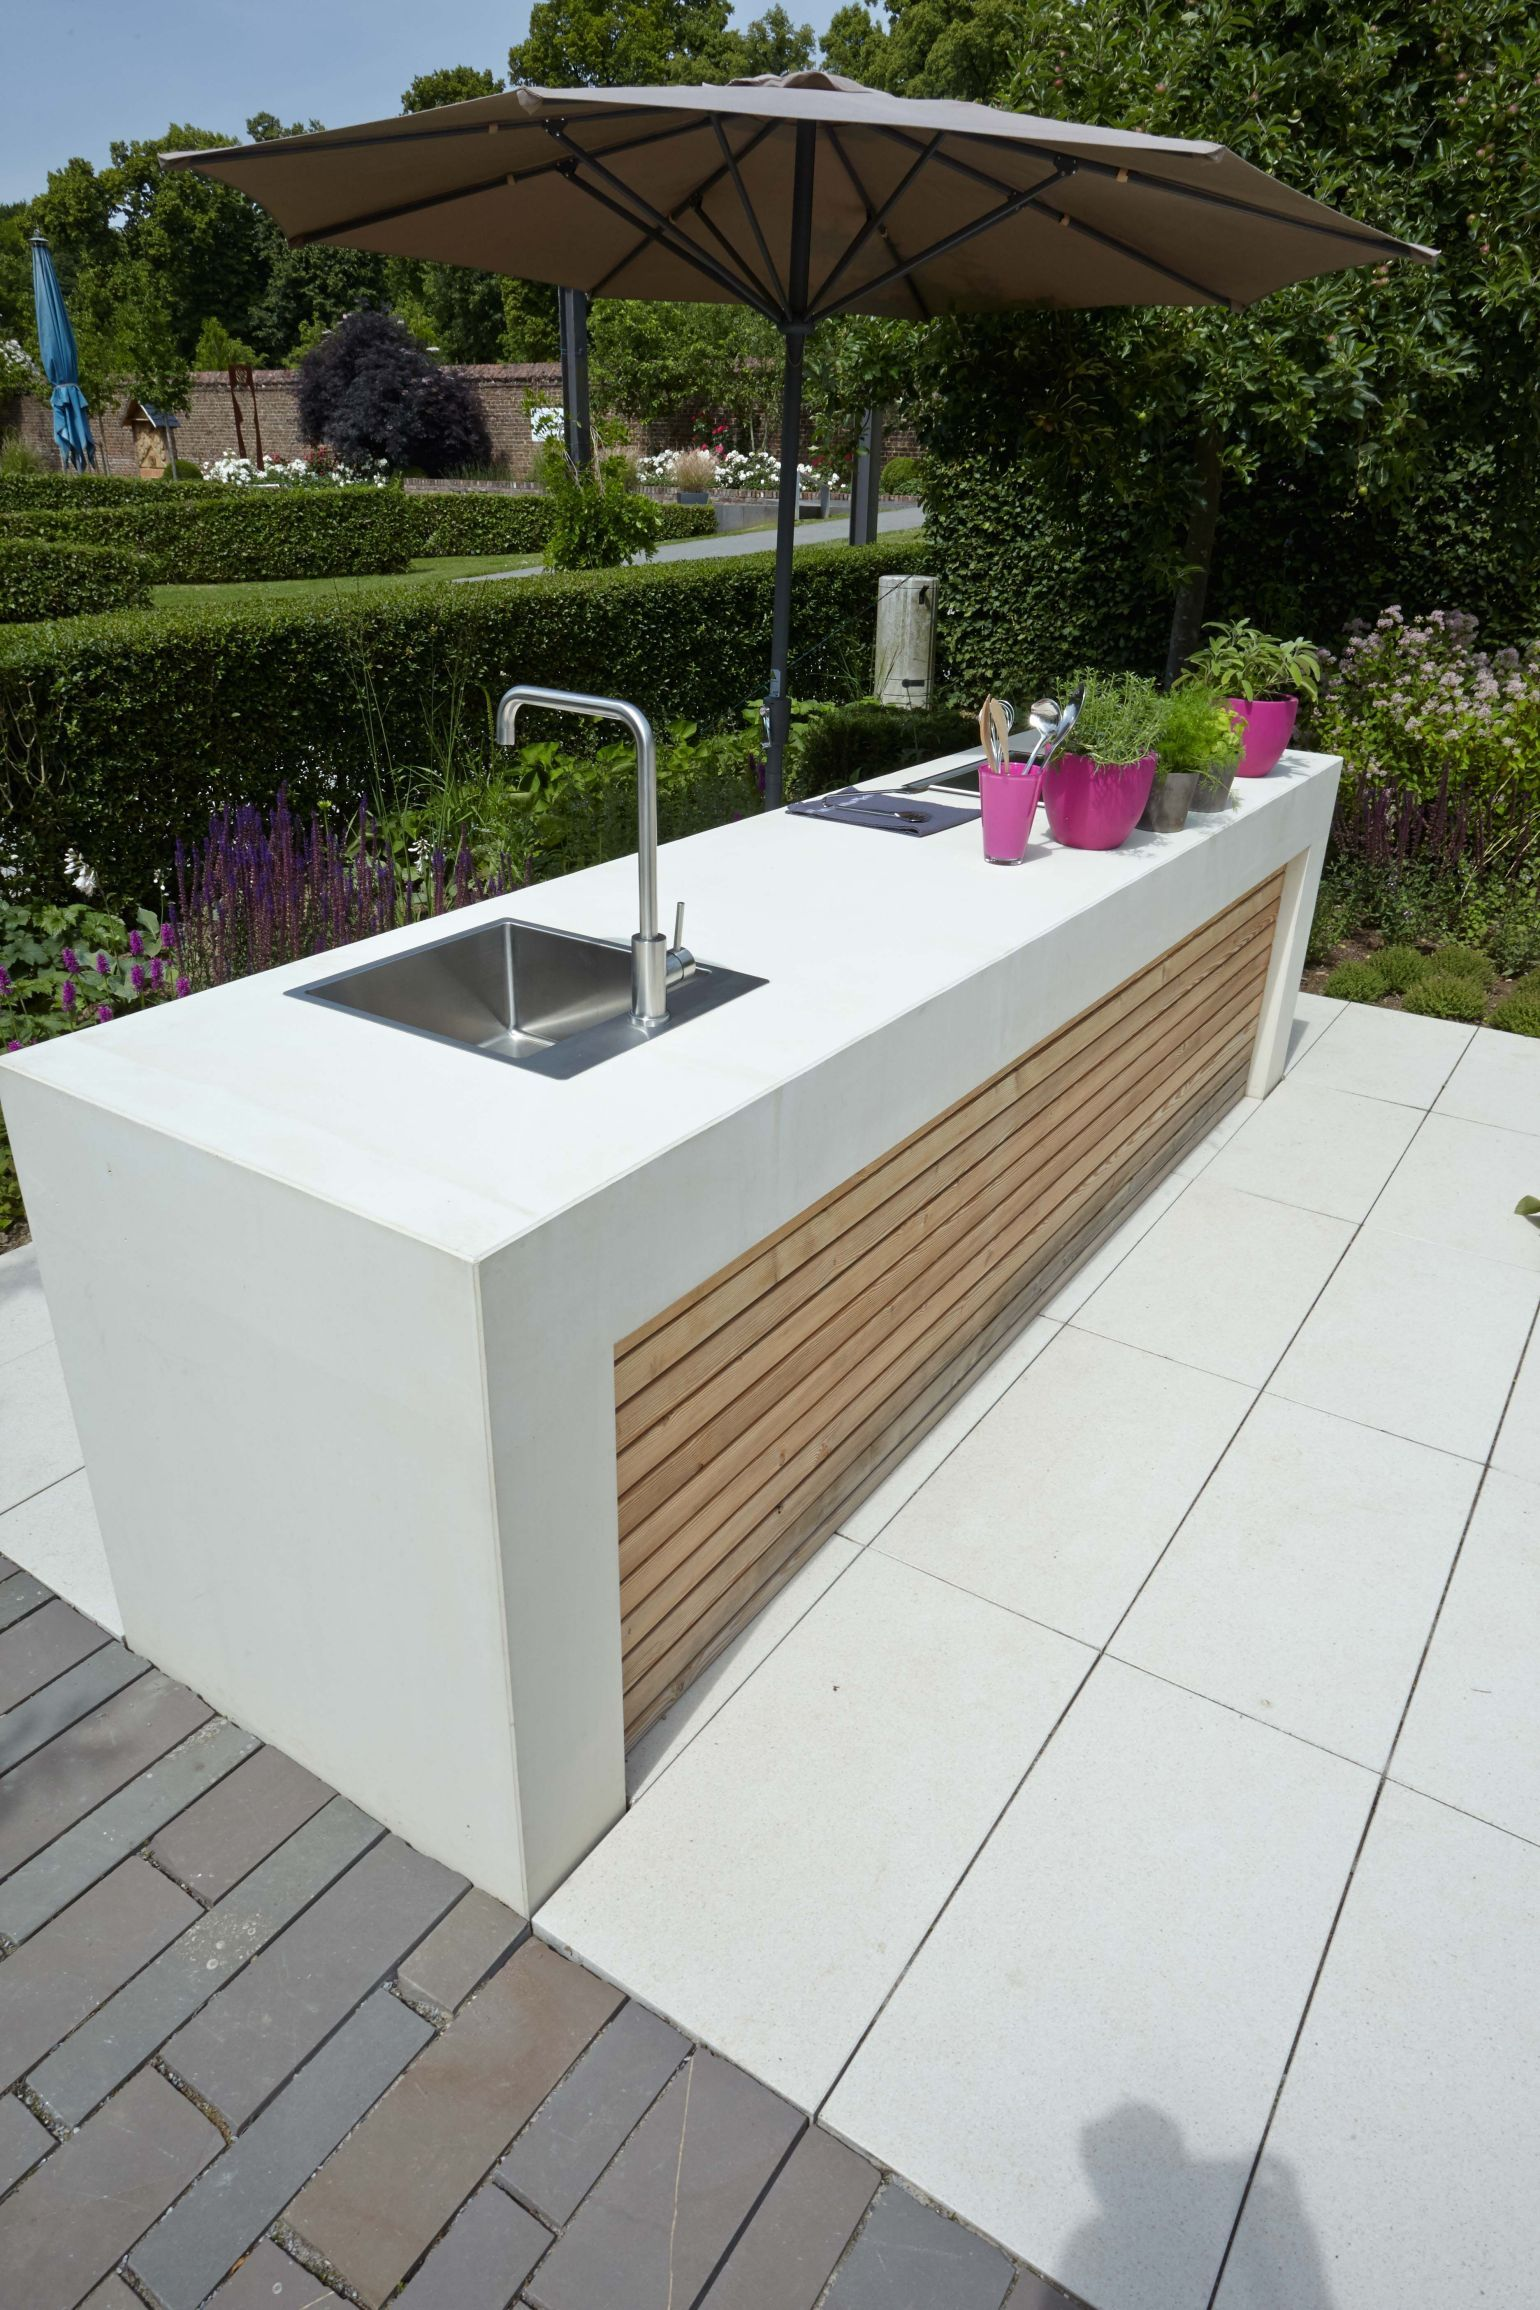 45 Awesome Outdoor Kitchen Ideas And Design Outdoor Kitchen Design Outdoor Kitchen Design Layout Outdoor Kitchen Bars